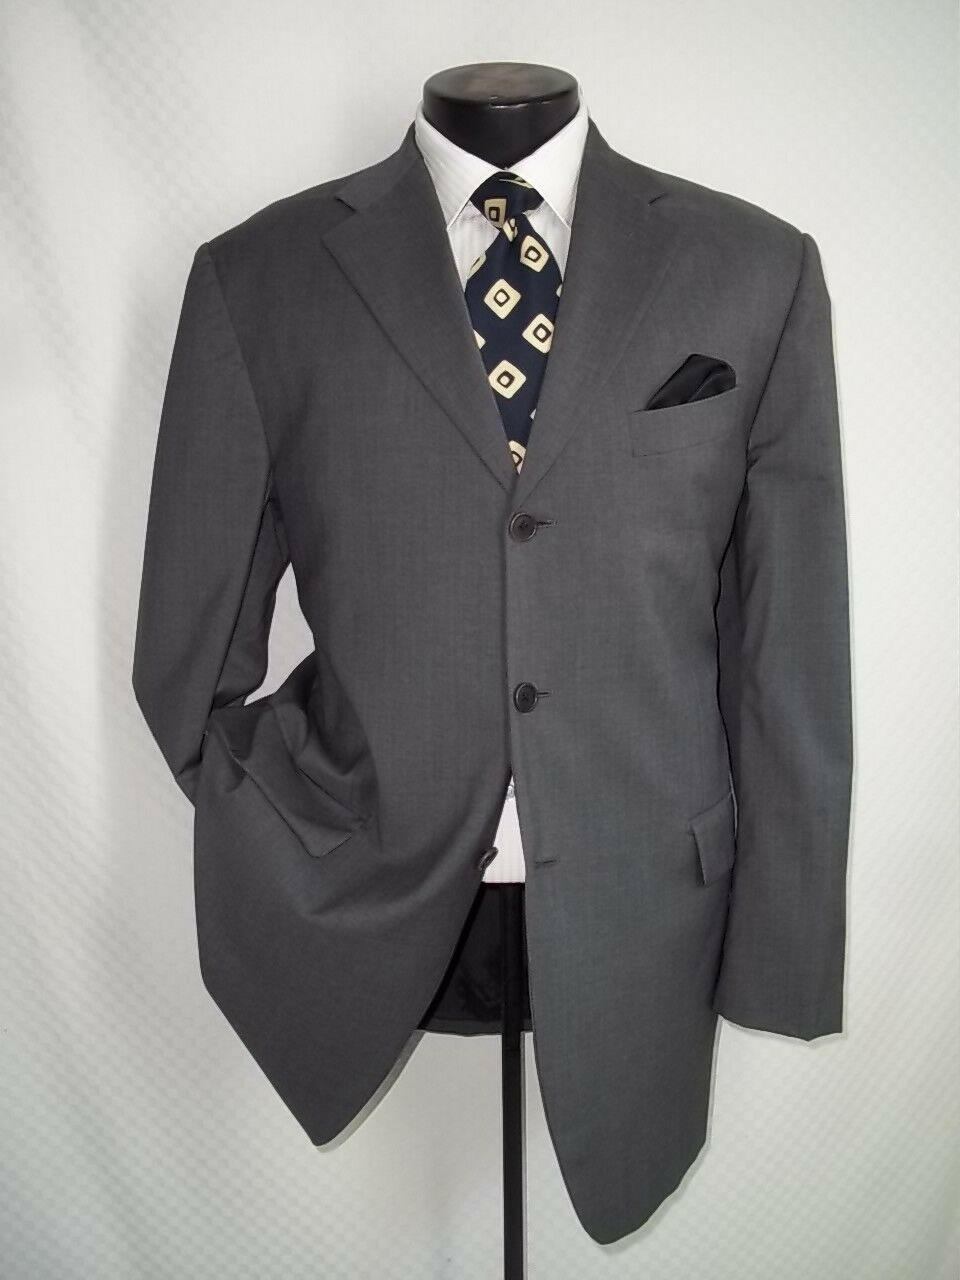 Vestimenta Solid grau 3 Buttons Side Vents Wool Suit 40 R Pants W34